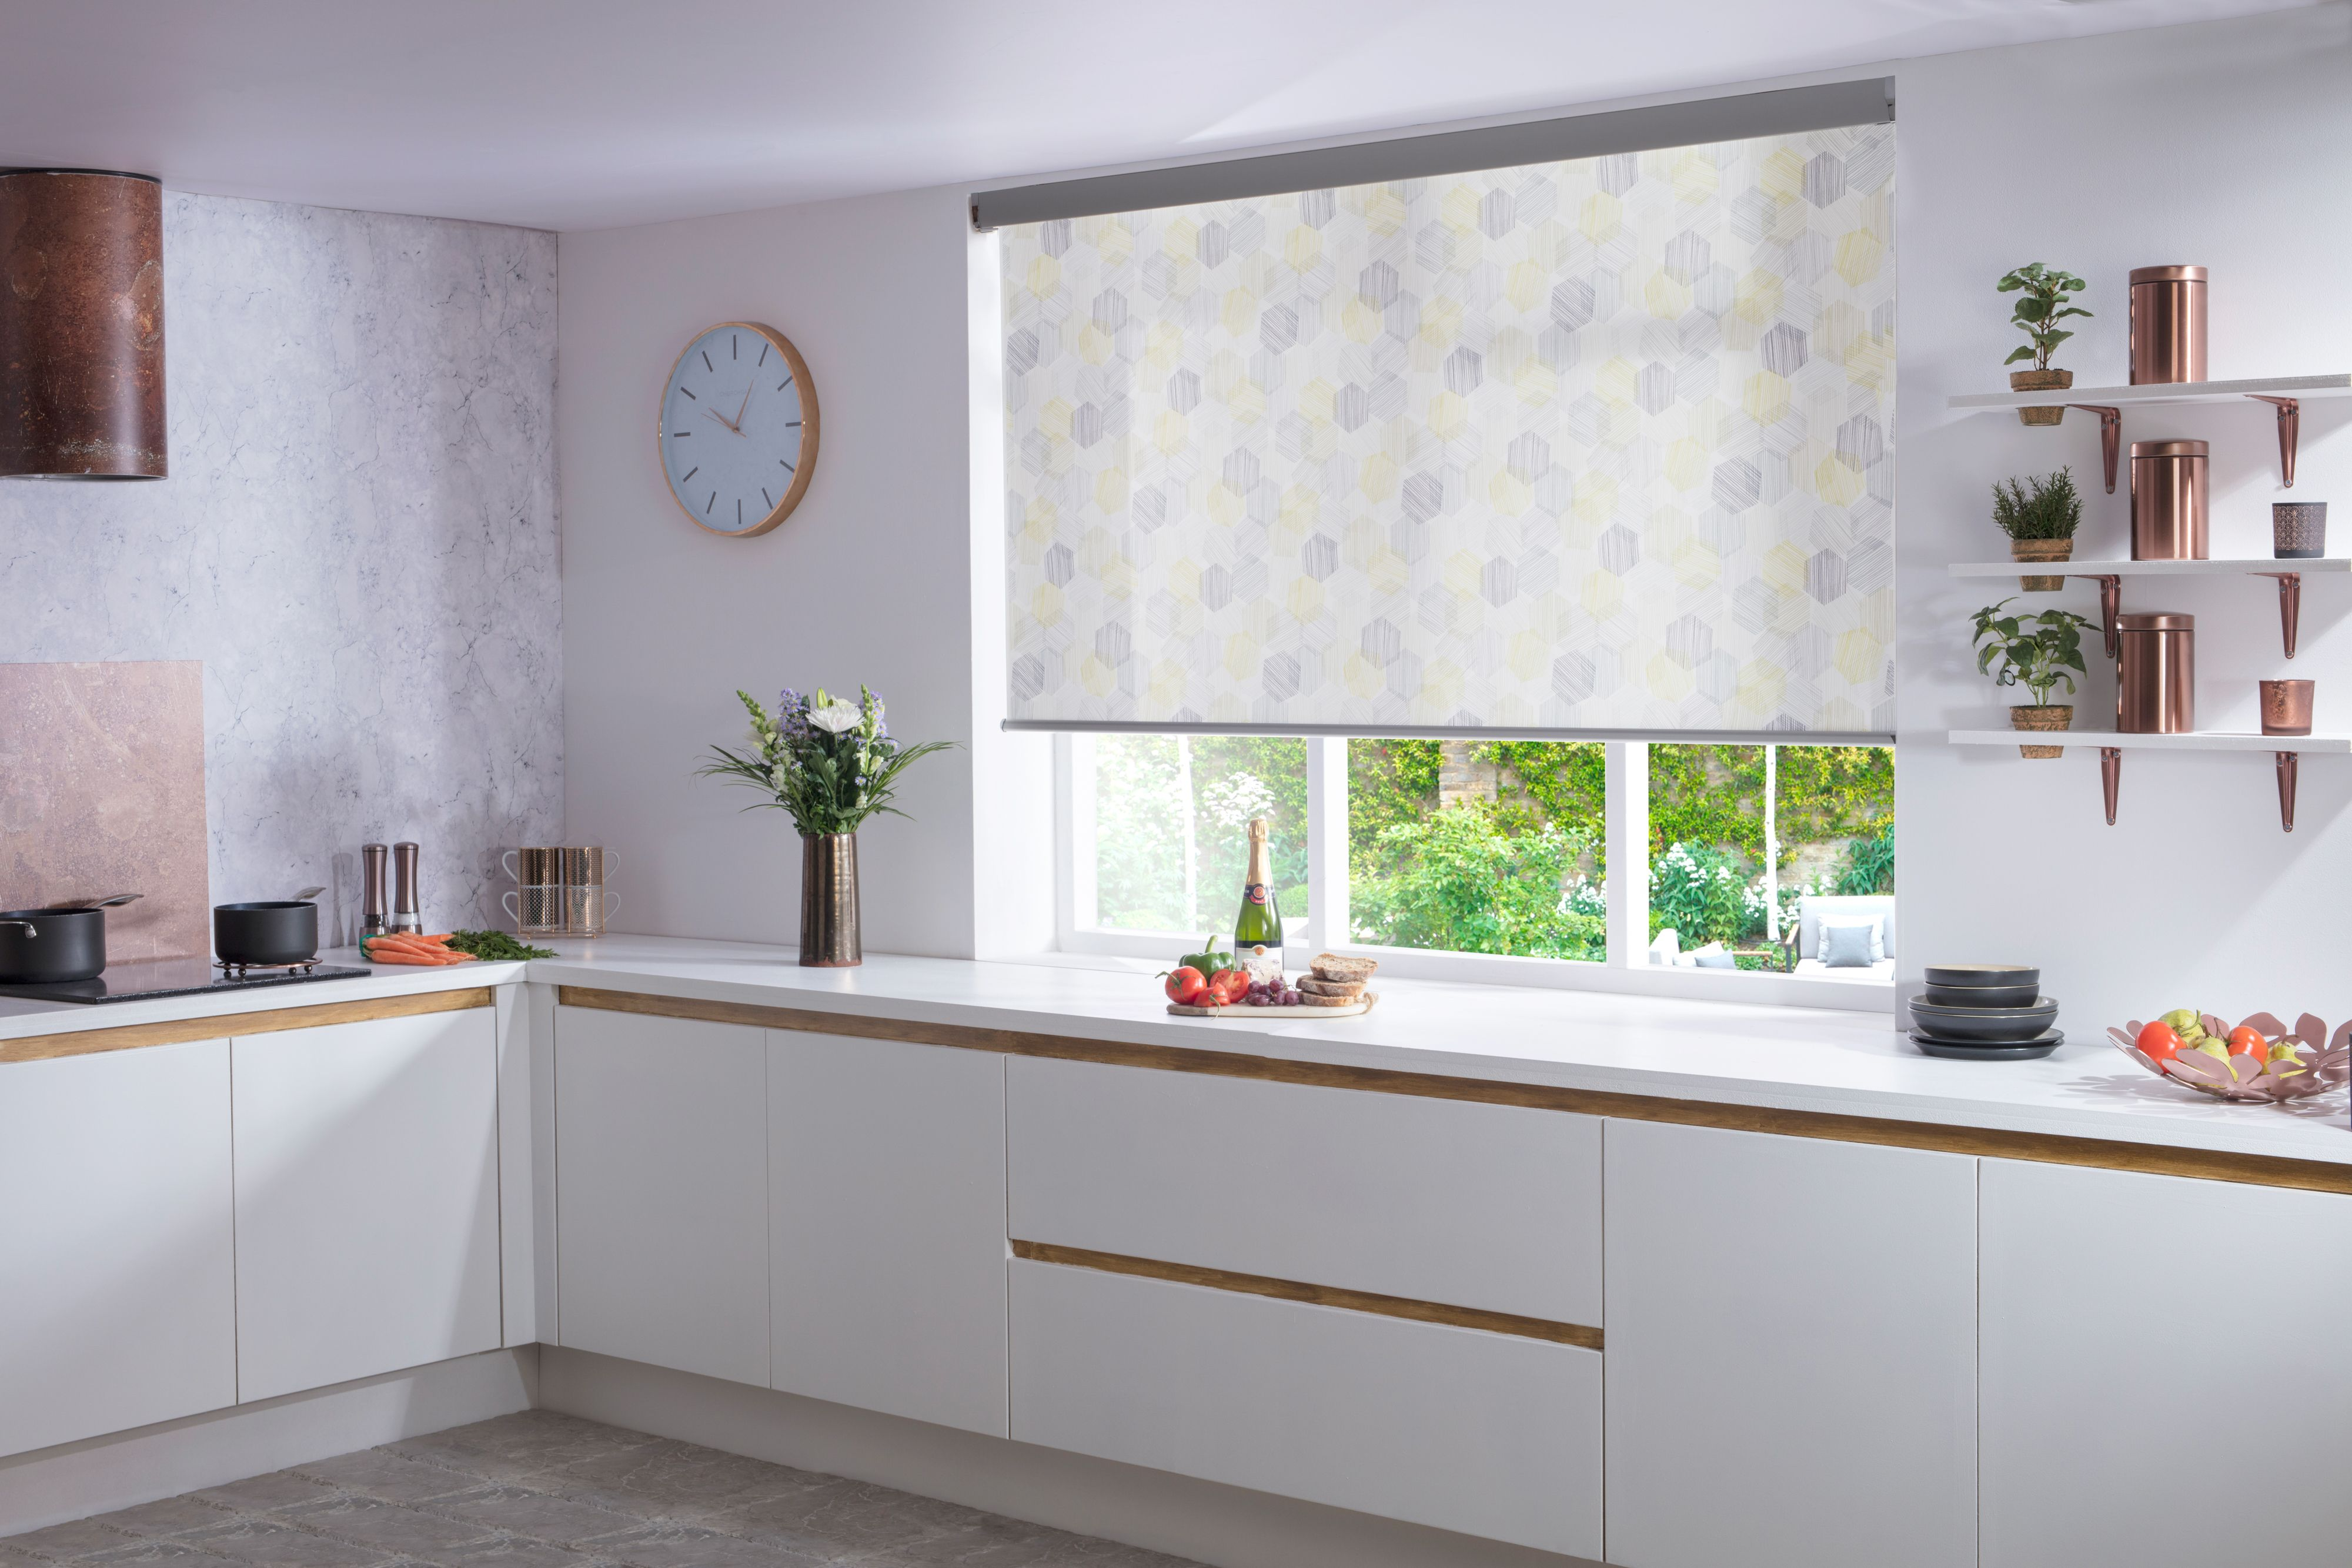 Hexagon yellow kitchen roller blind from Style Studio